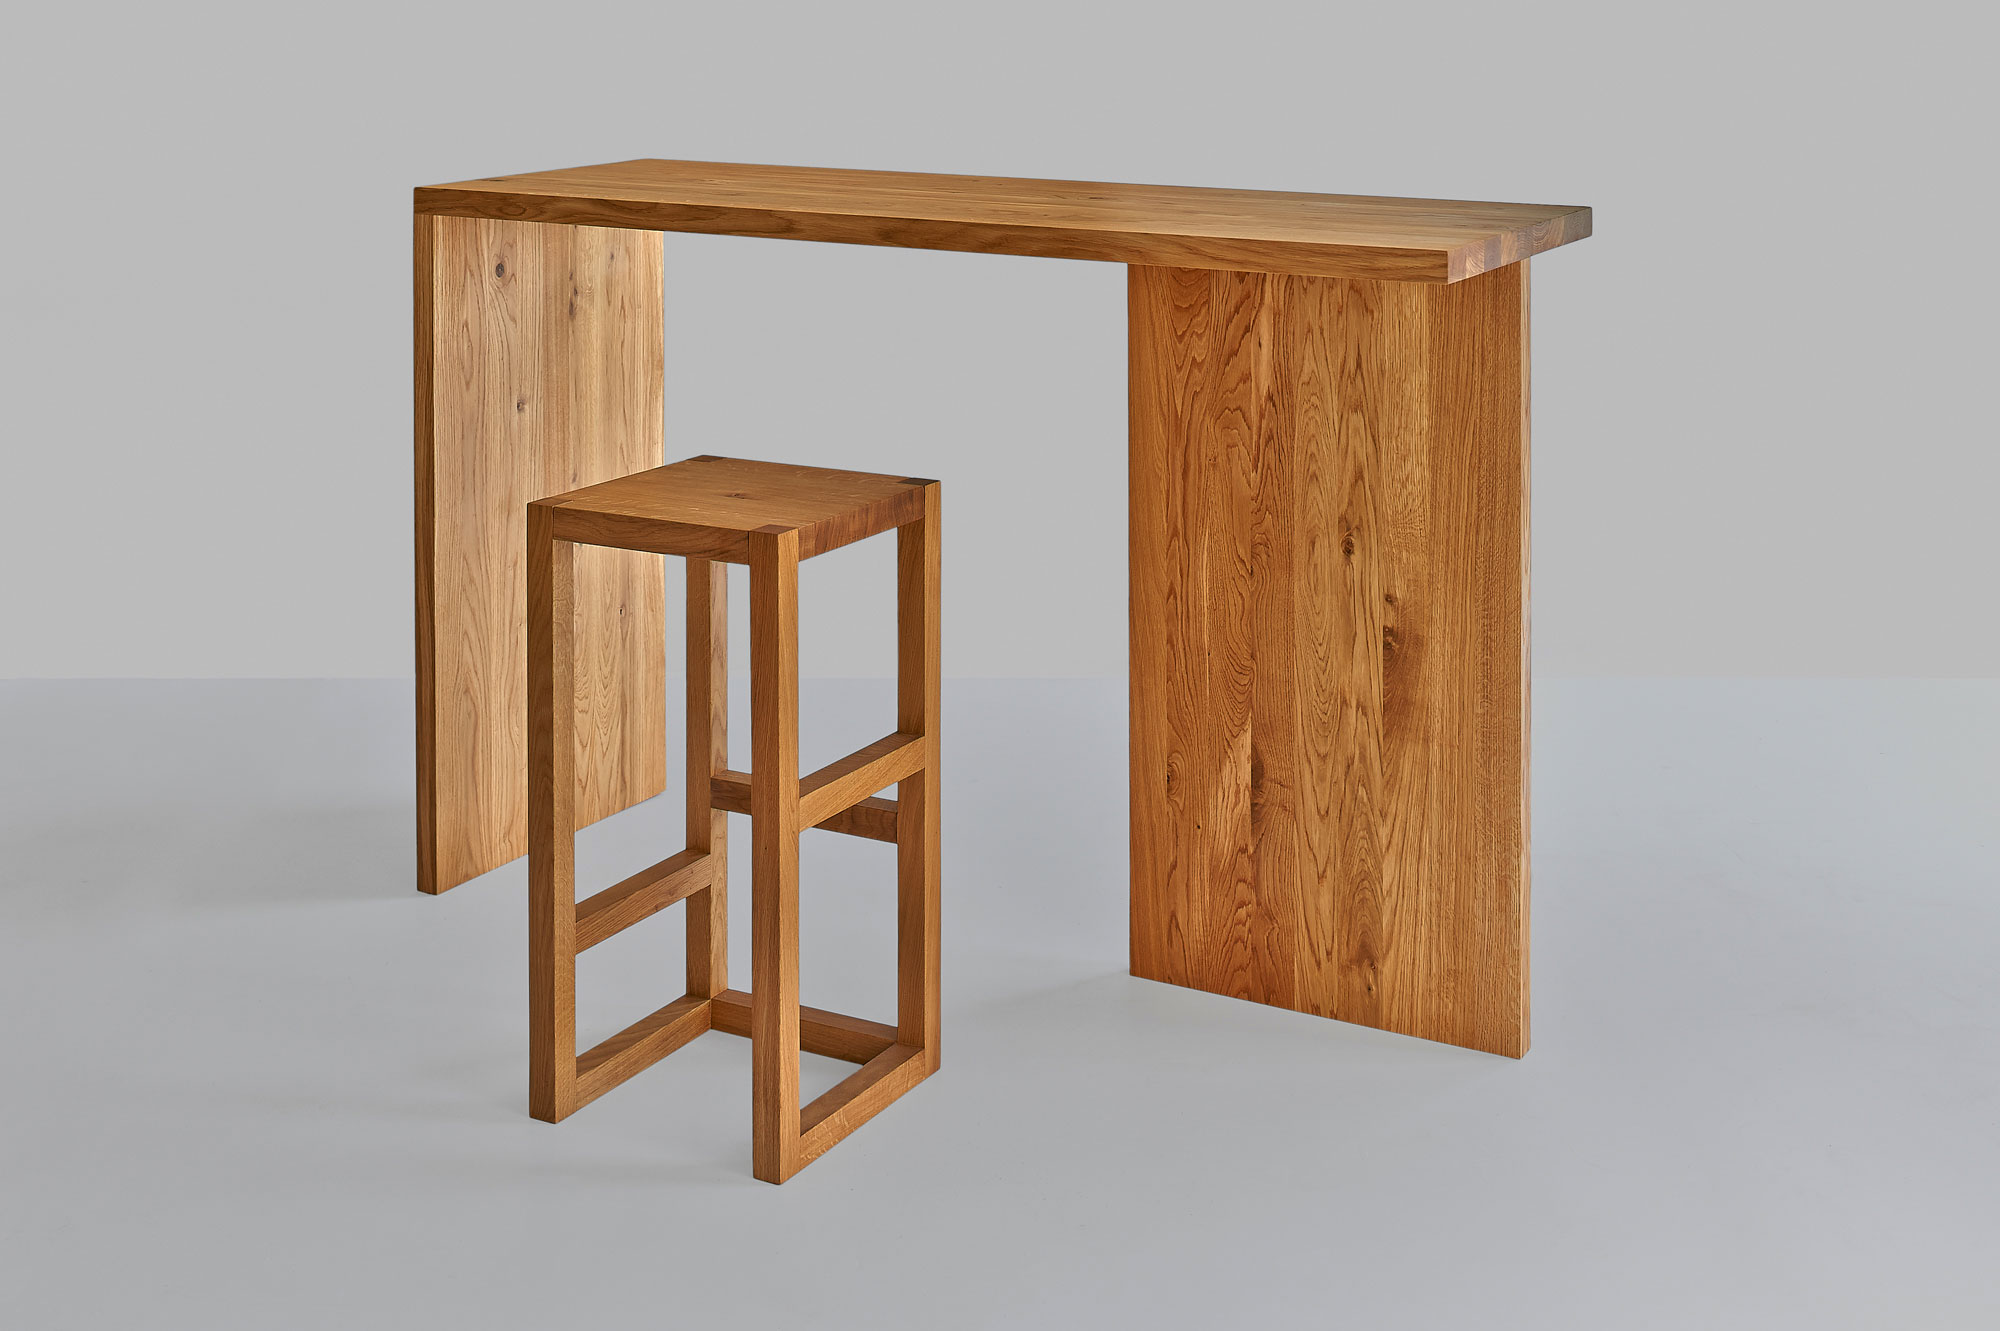 Solid Wood Console Table MENA CONSOLE 1468 custom made in solid wood by vitamin design